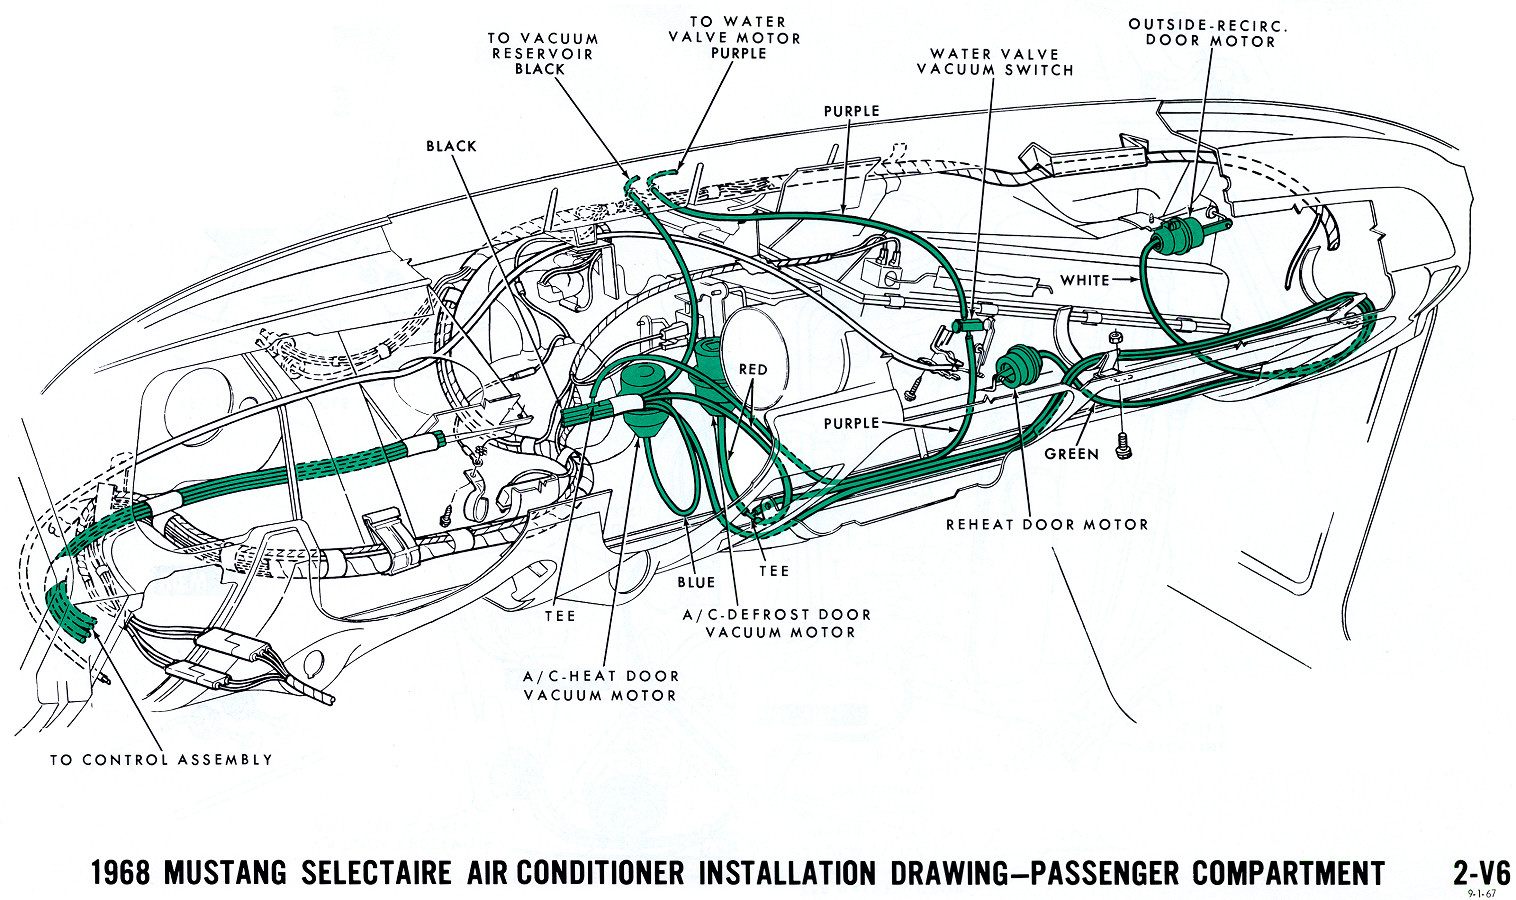 1968 mustang vacuum diagram air conditioning interior 1968 mustang wiring diagrams and vacuum schematics average joe Dodge Ram Wiring Diagram at mifinder.co